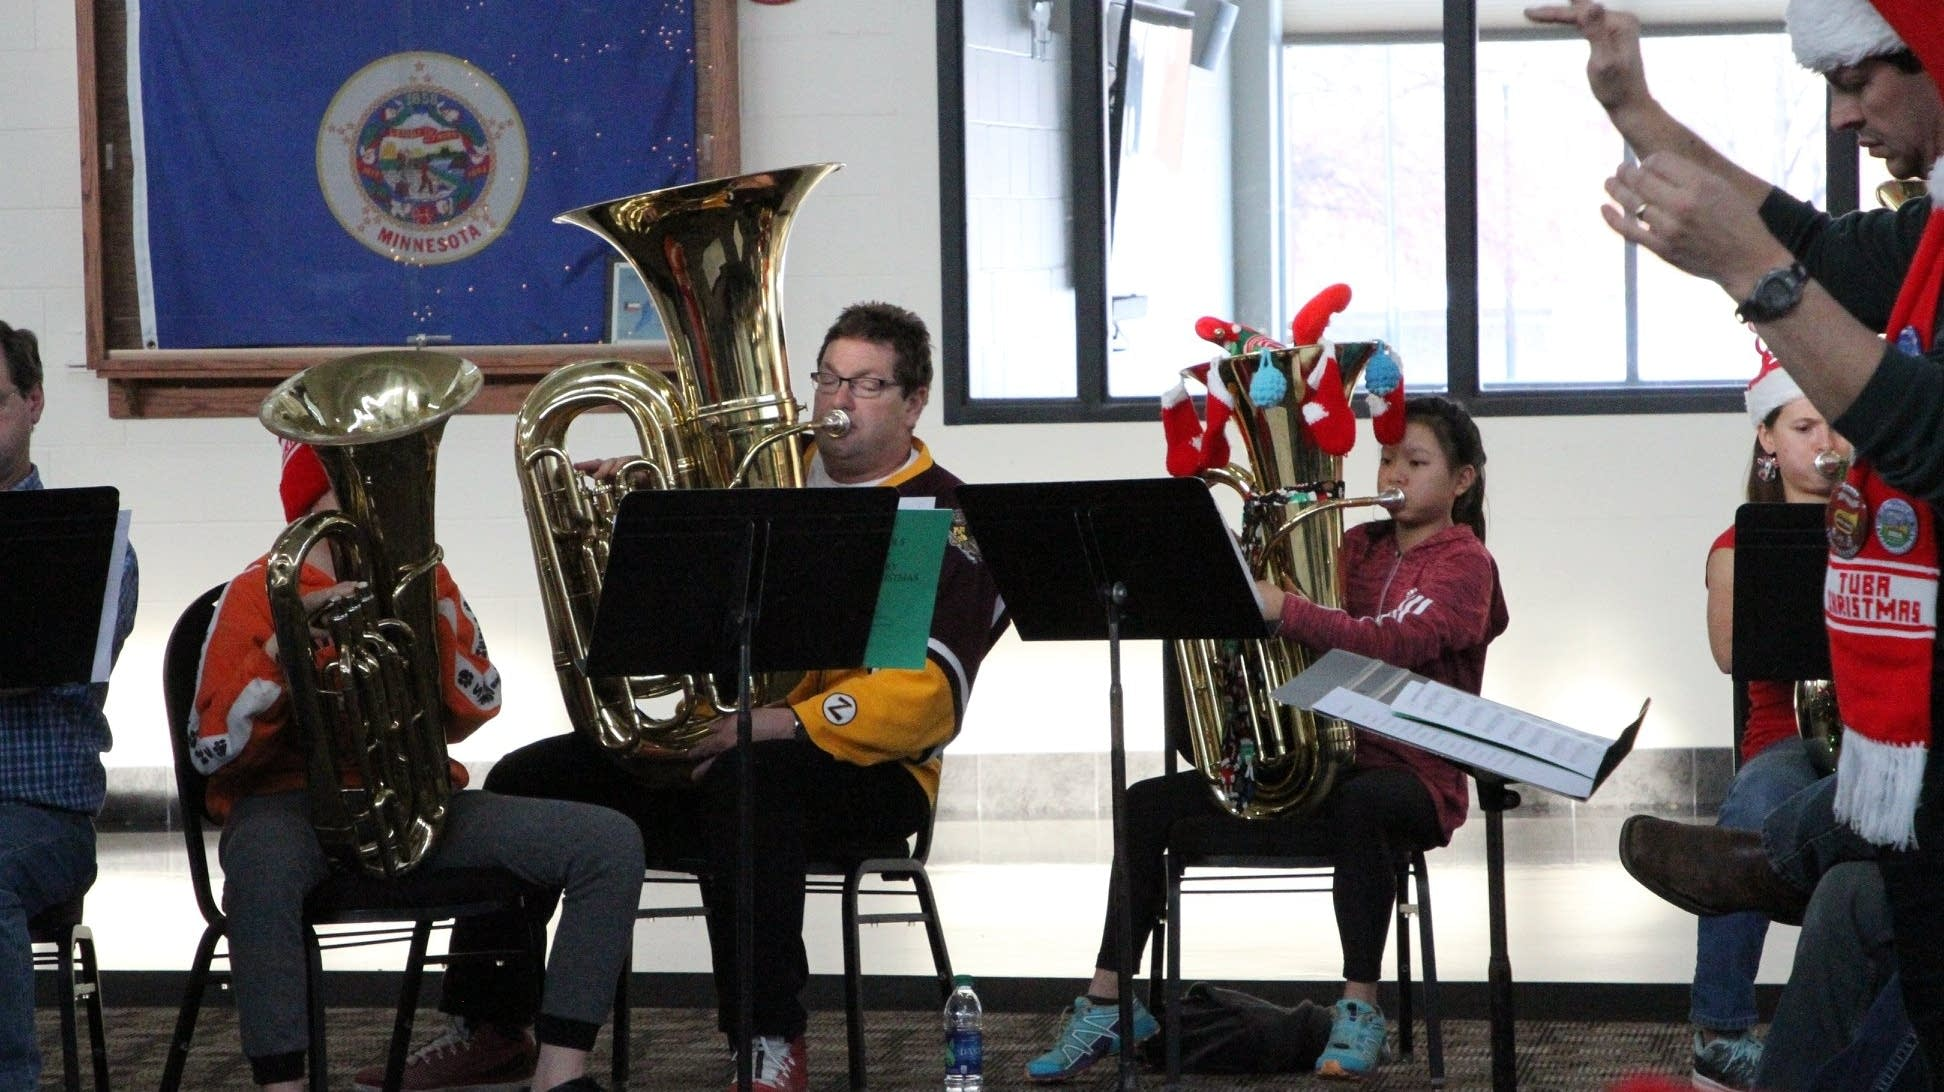 Performers from TubaChristmas